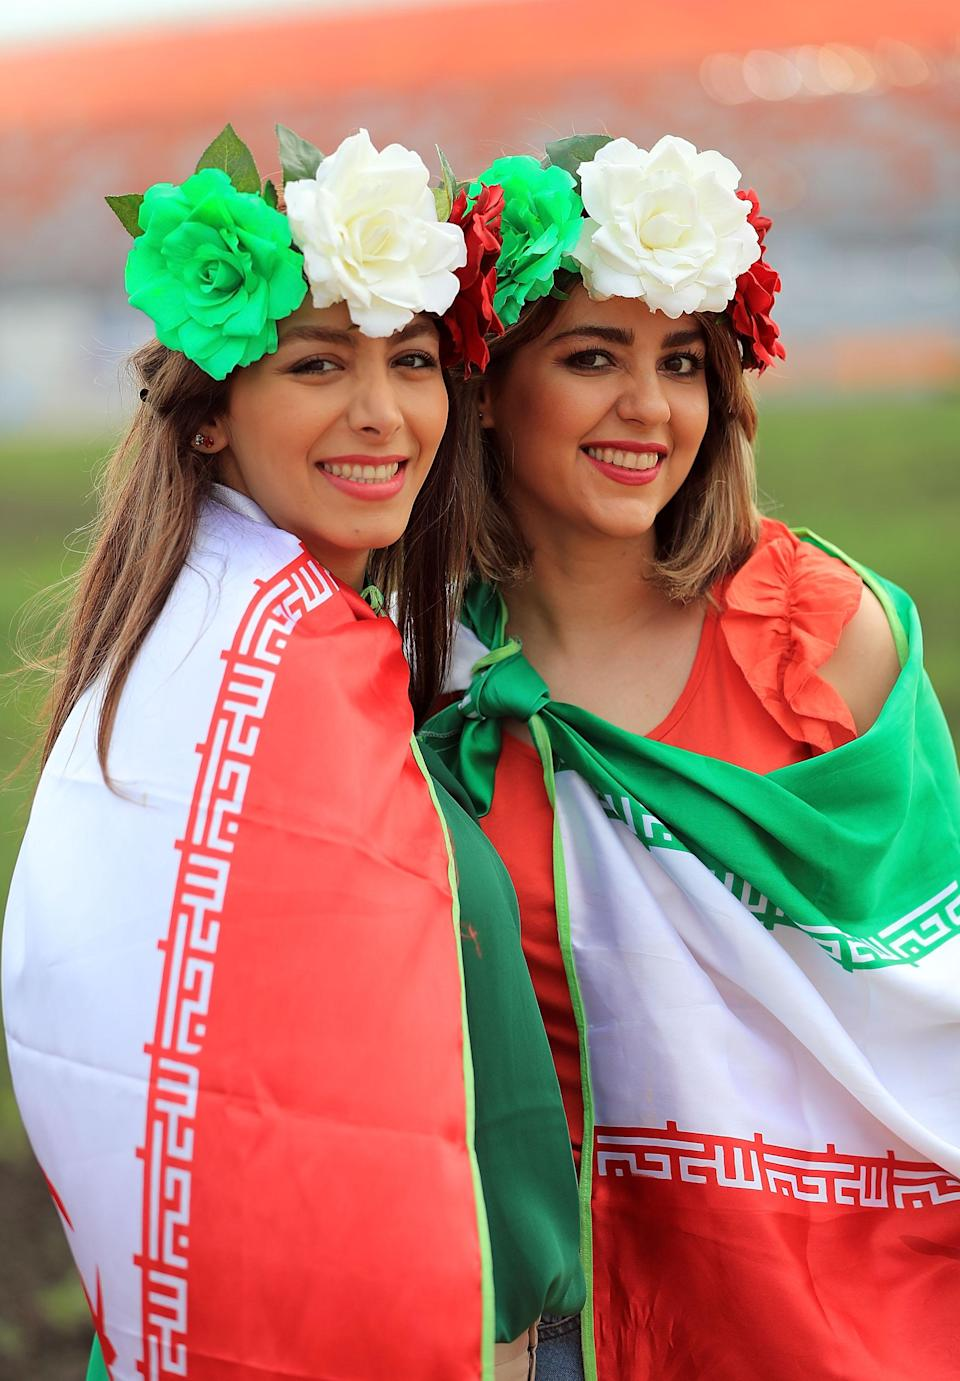 <p>Iranian fans before the 2018 FIFA World Cup Russia group B match between Iran and Portugal at Mordovia Arena on June 25, 2018 in Saransk, Russia. (Photo by Amin Mohammad Jamali/Getty Images) </p>